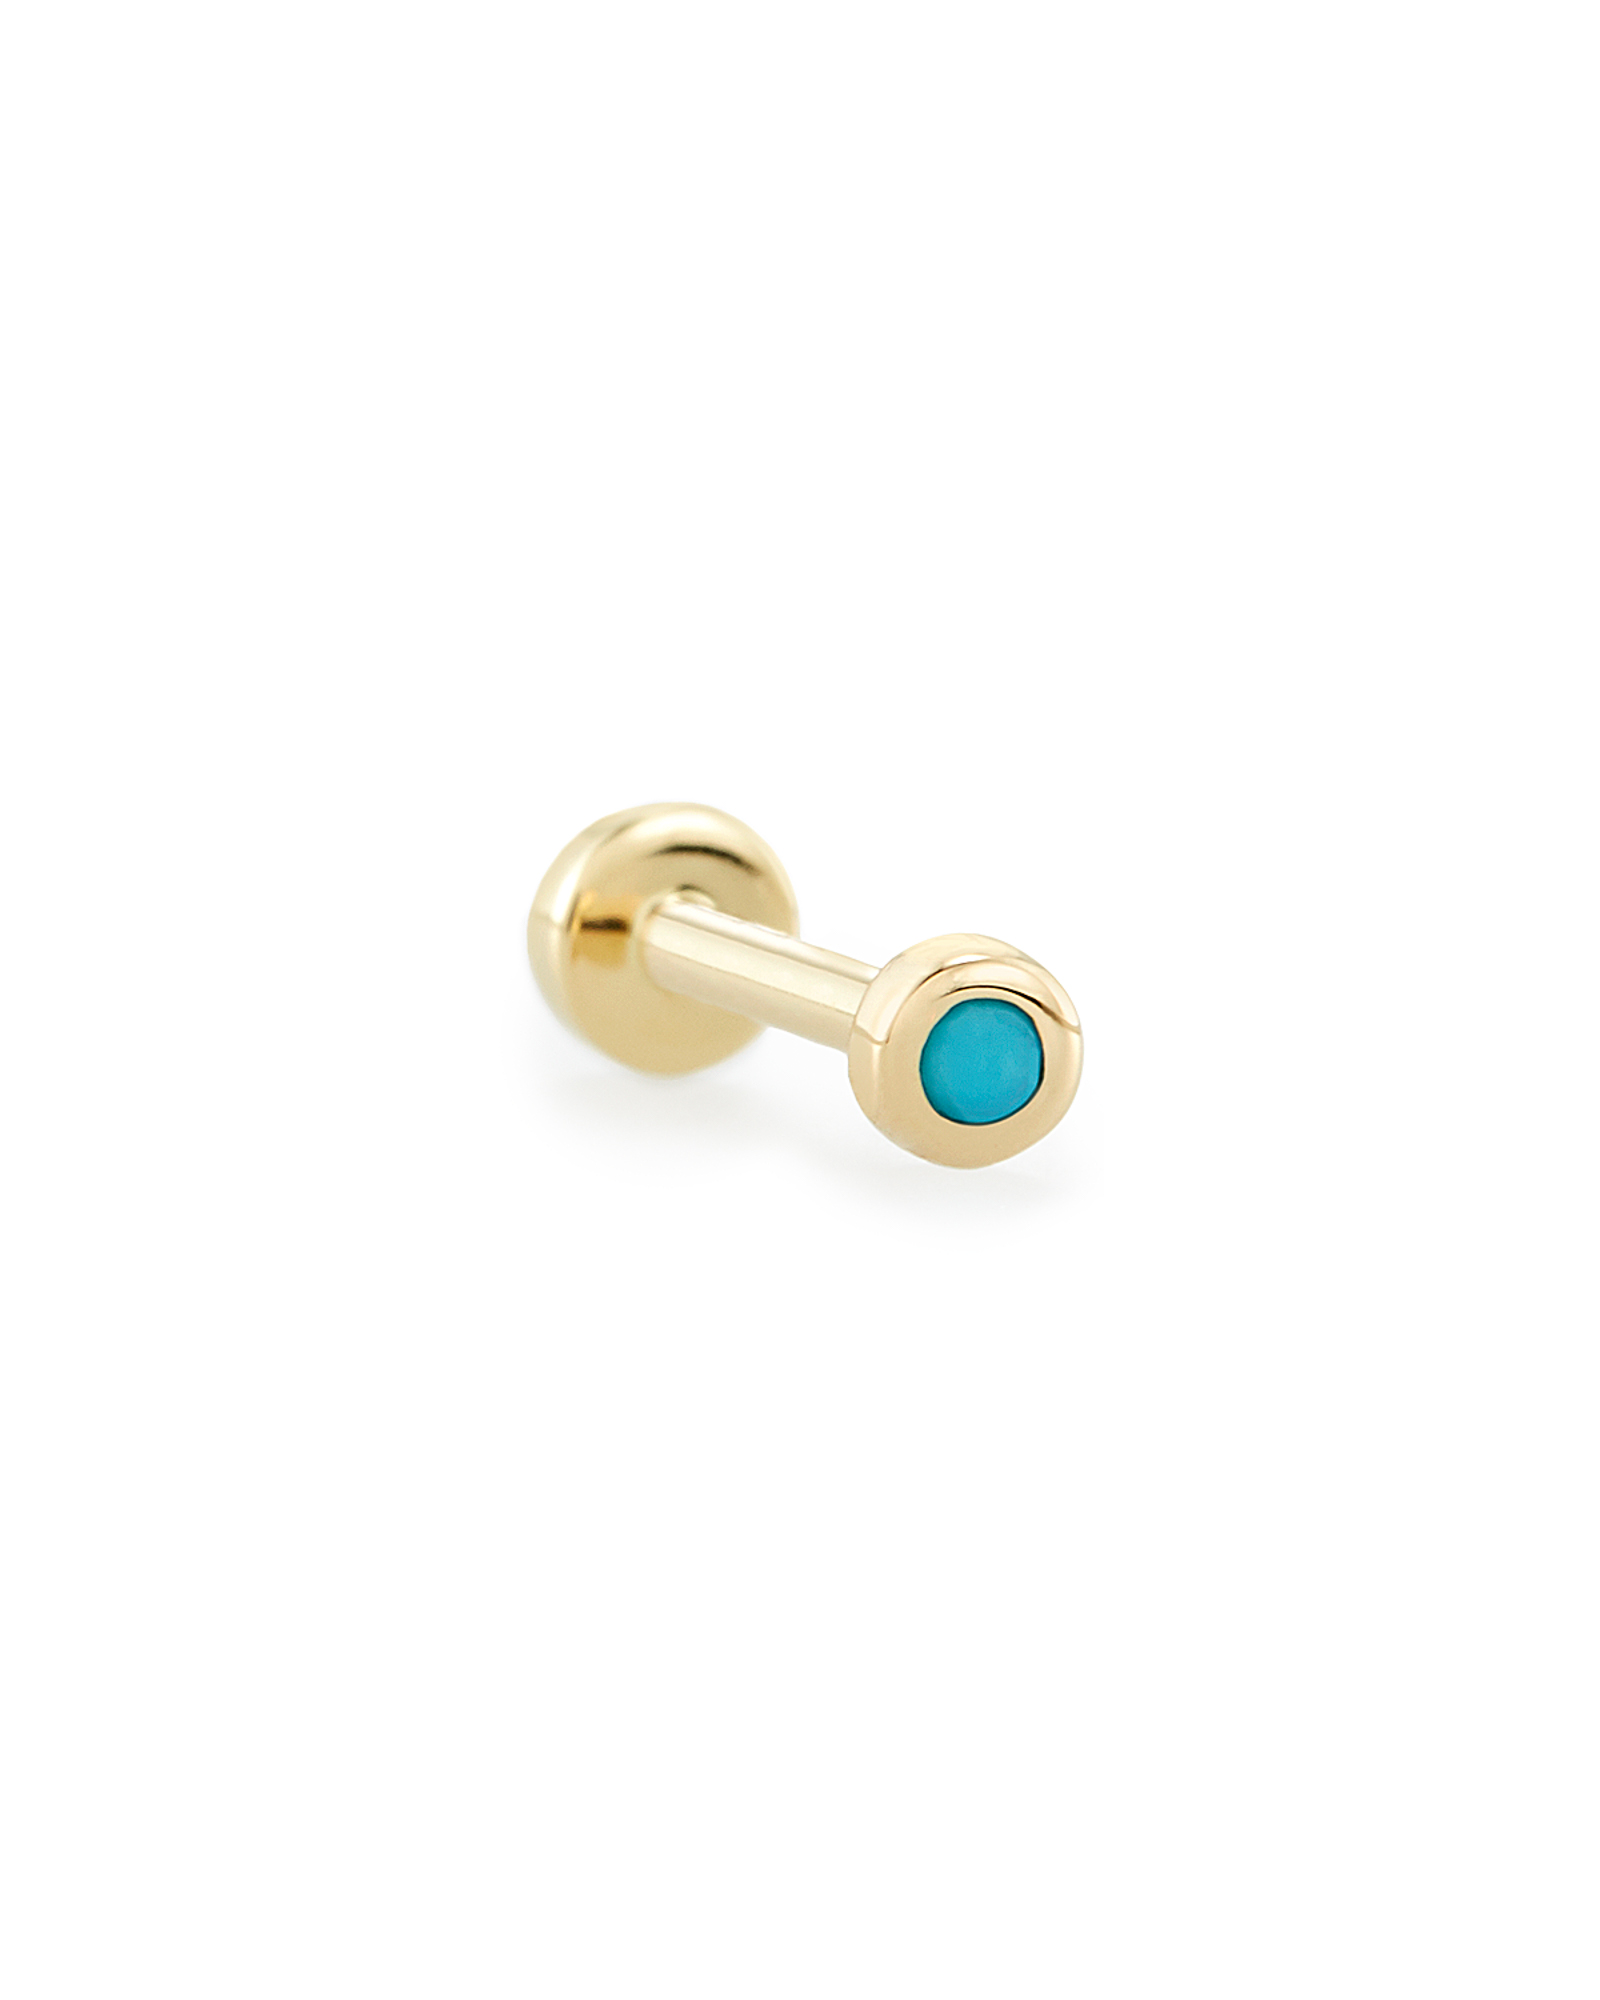 Reeve Mini 14K Yellow Gold Stud Earring in Genuine Turquoise